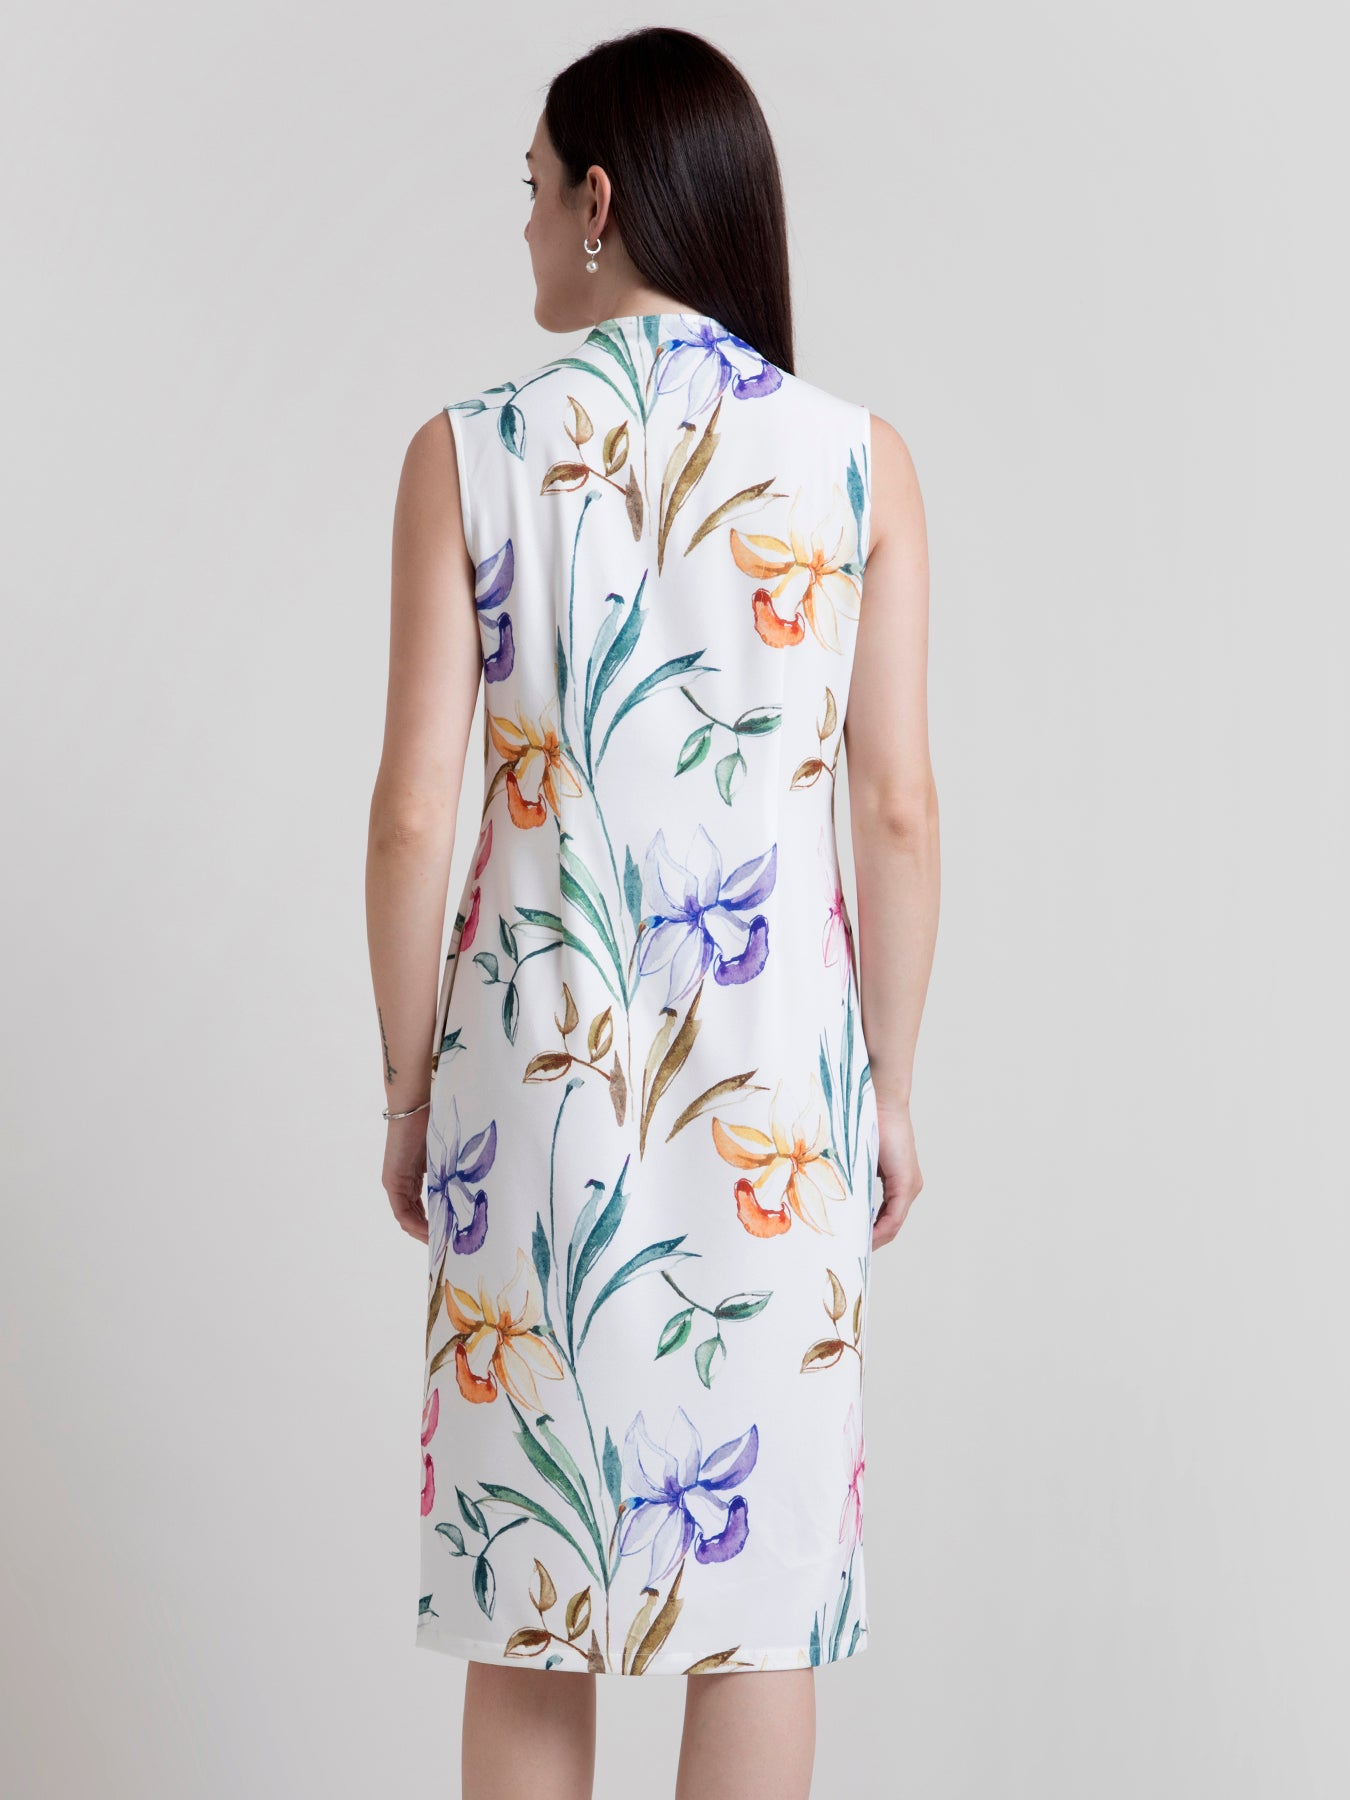 V Neck Floral Shift Dress - White and Yellow